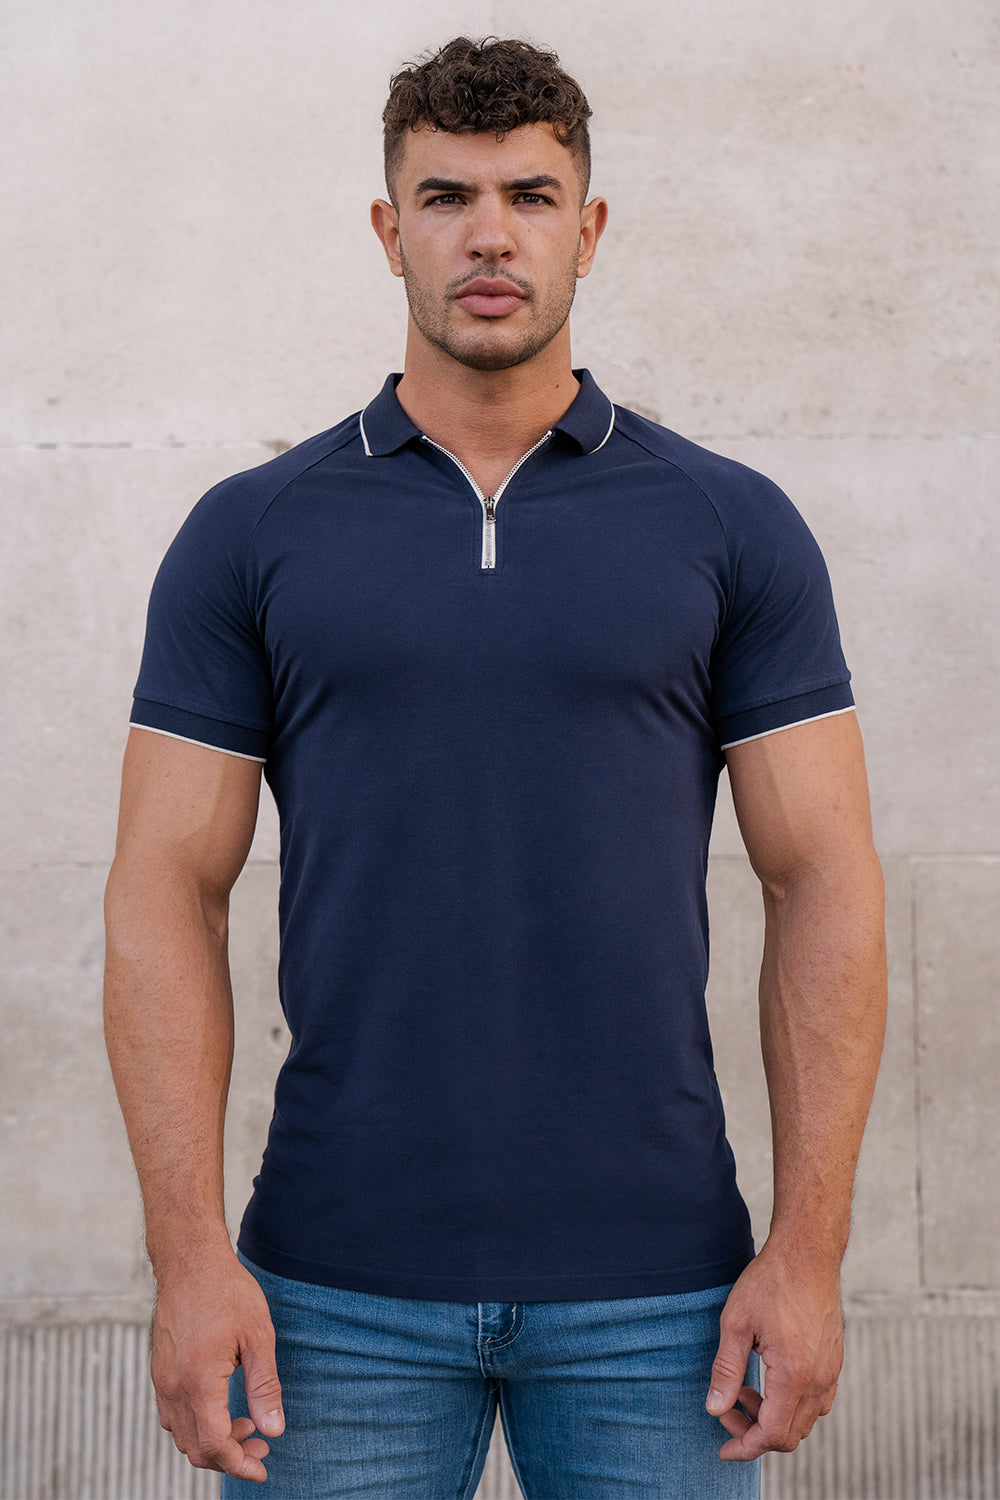 Piqué Zip Polo Shirt in Navy